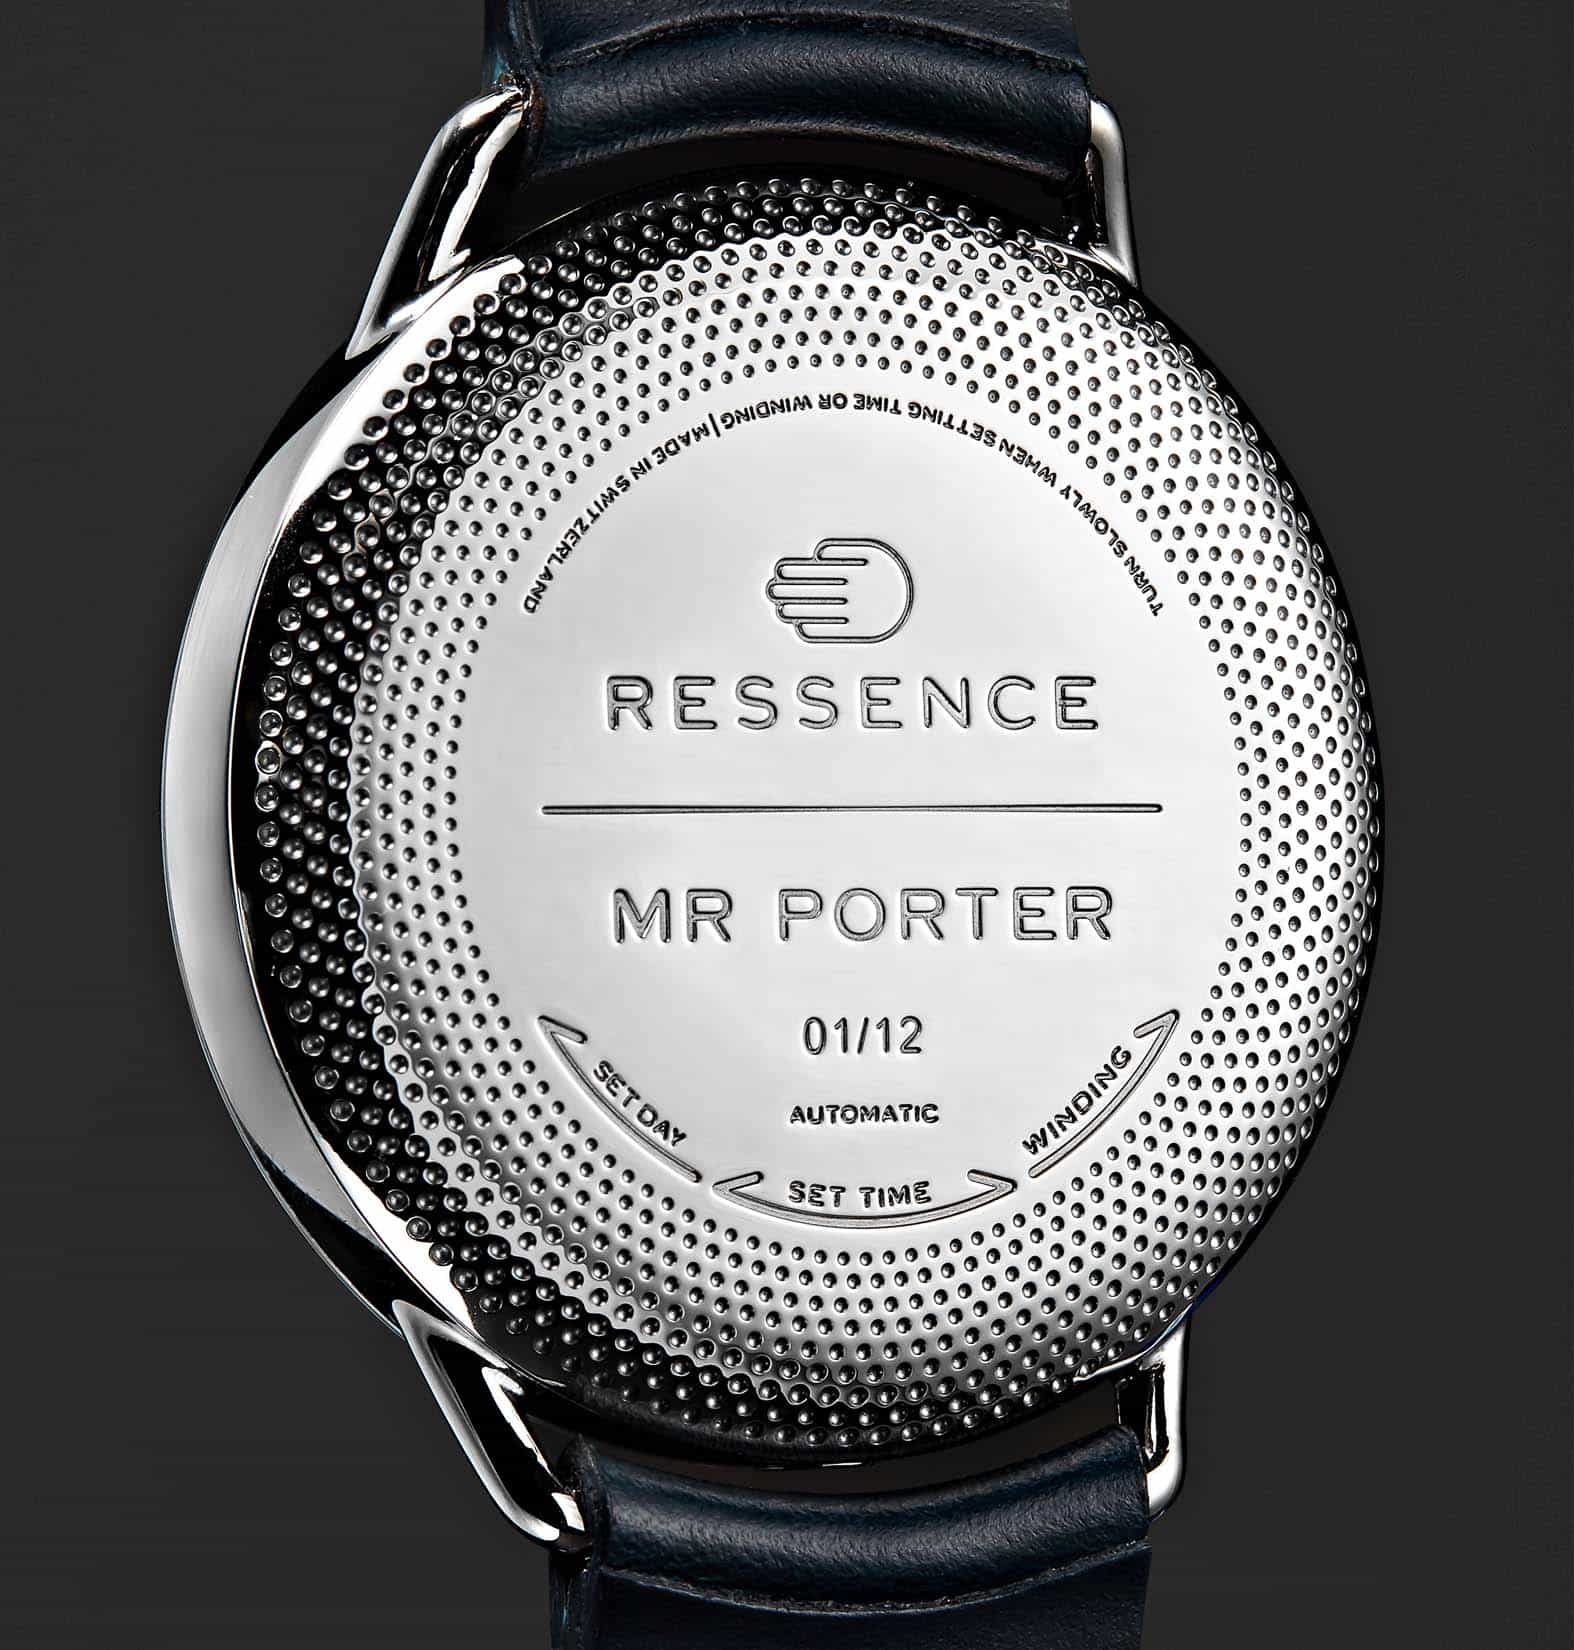 Mr Porter and Ressence Collaborate – Introducing the Ressence Type 1 MRP